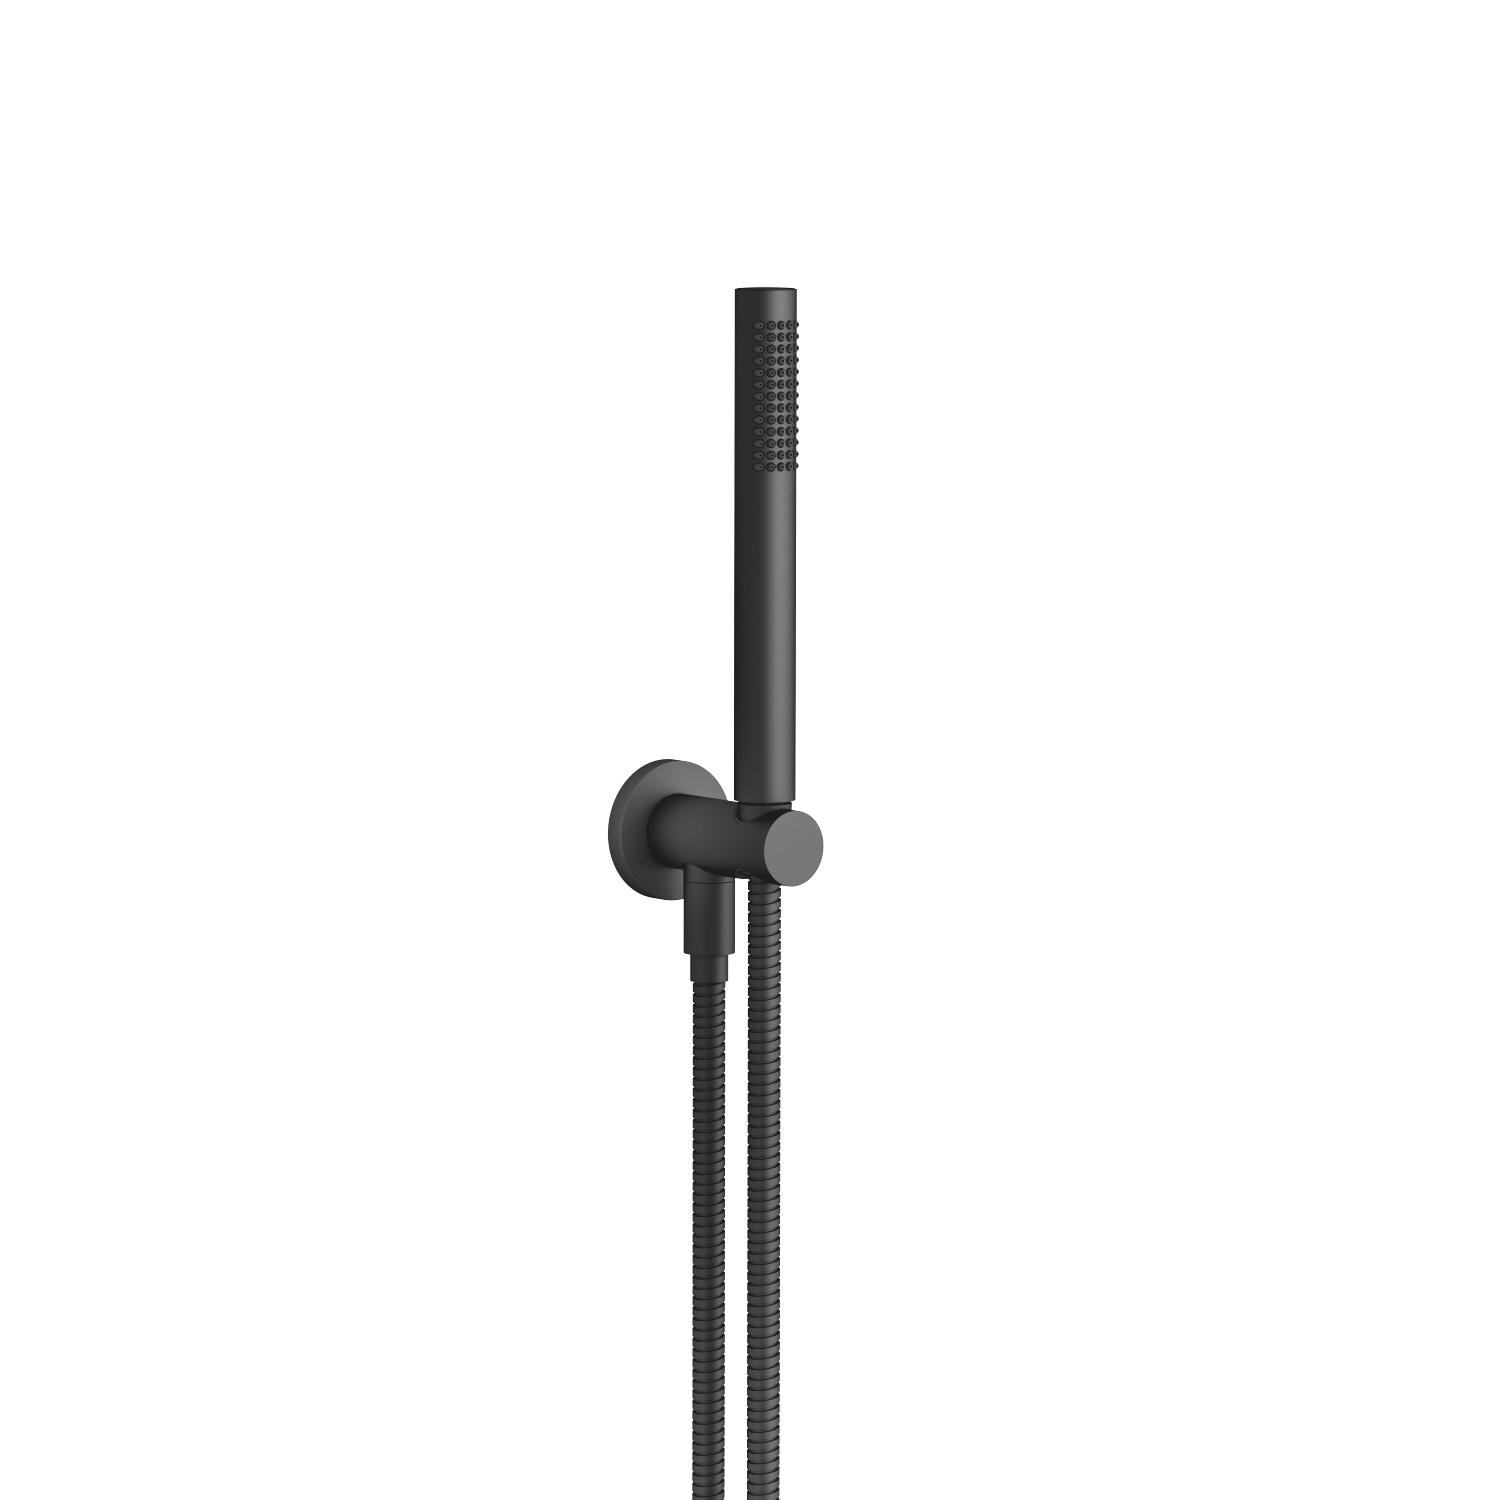 Hand shower set with integrated wall bracket - black matte